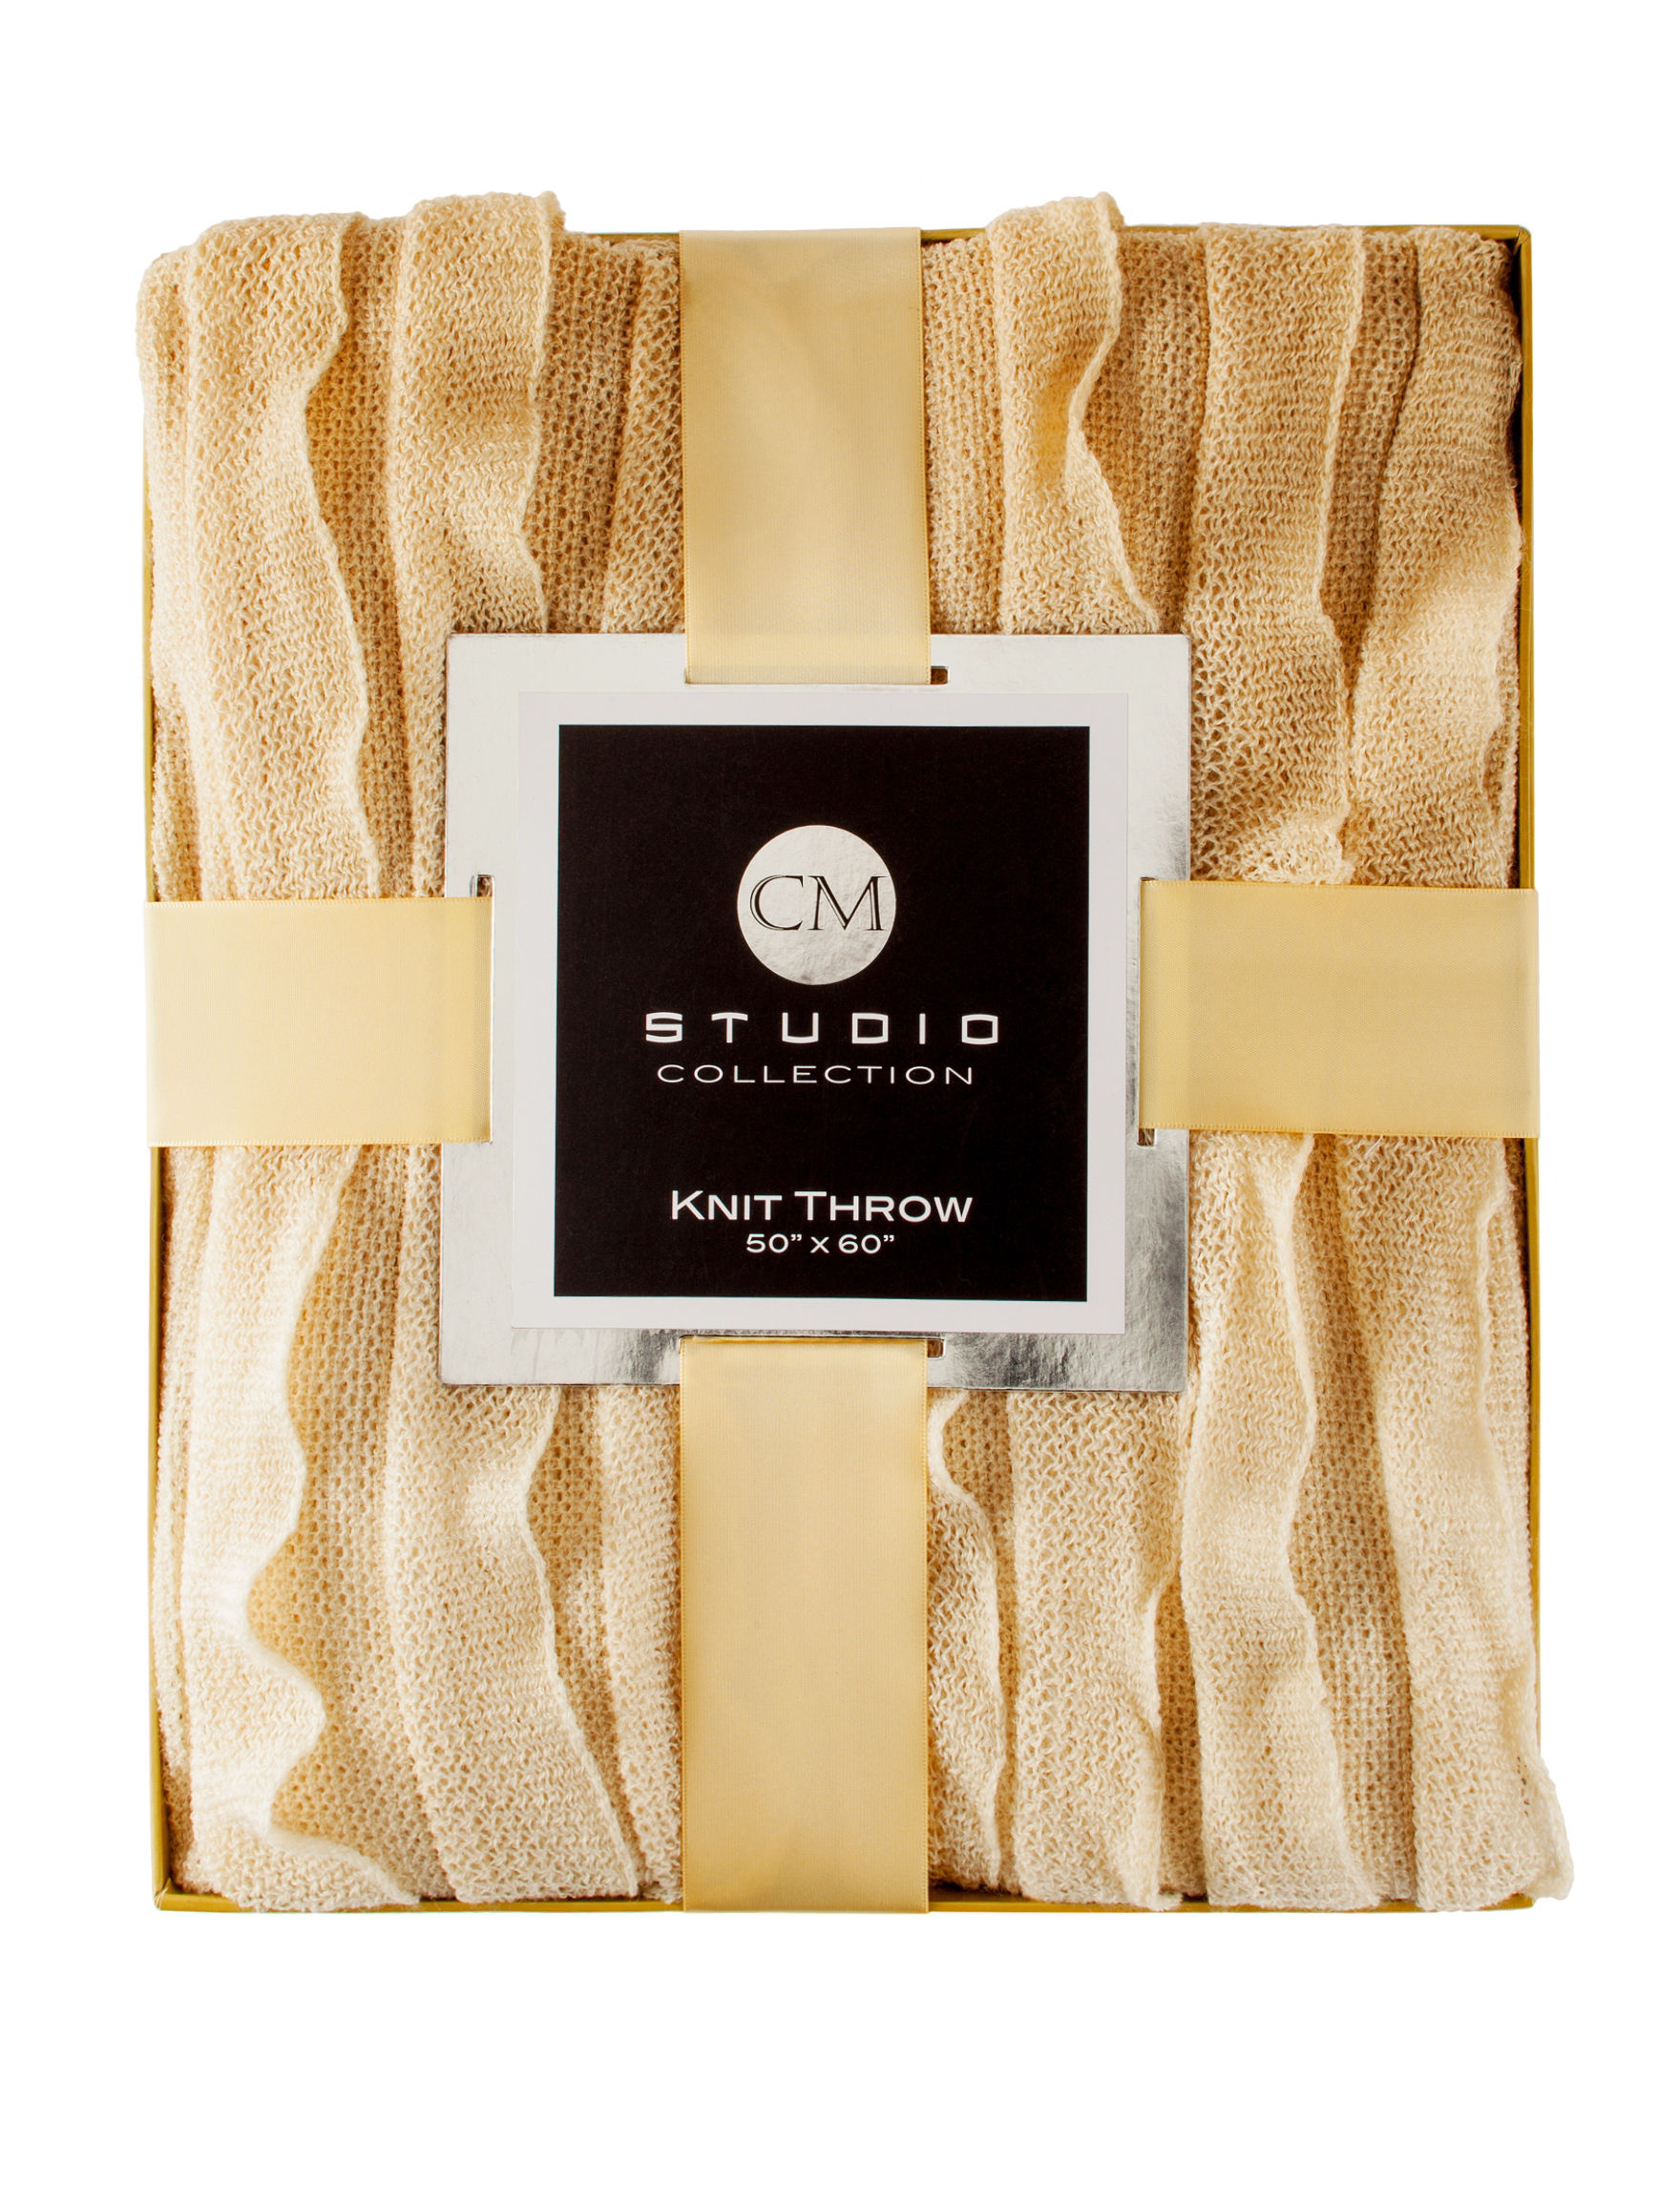 CM Studio Collection Oatmeal Blankets & Throws